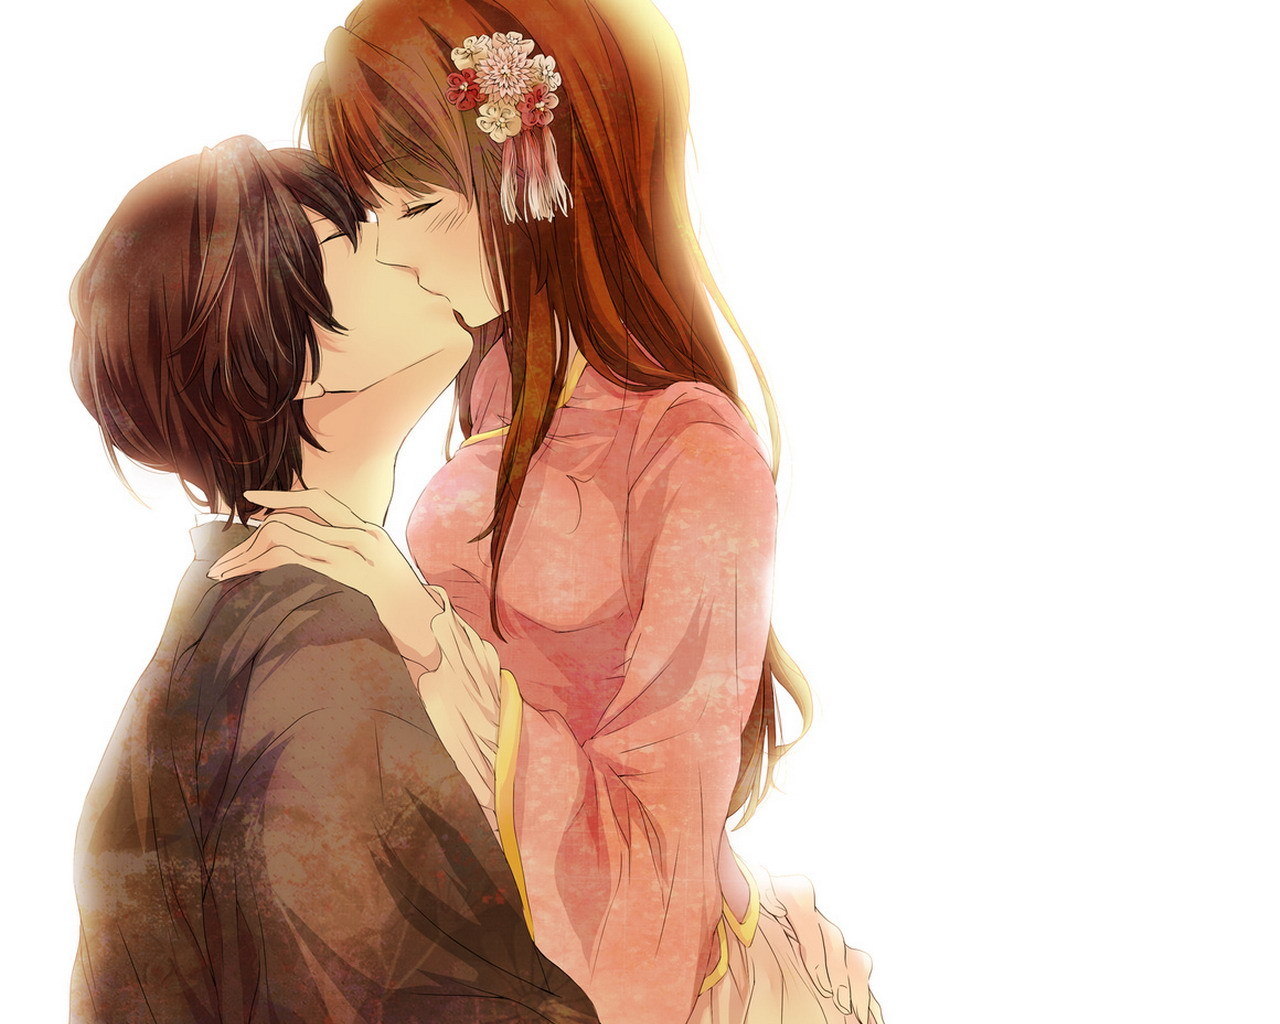 Wallpaper Love Kiss Hot : Animals Zoo Park: Anime couple, Anime Love couple Kiss Wallpapers & Pictures